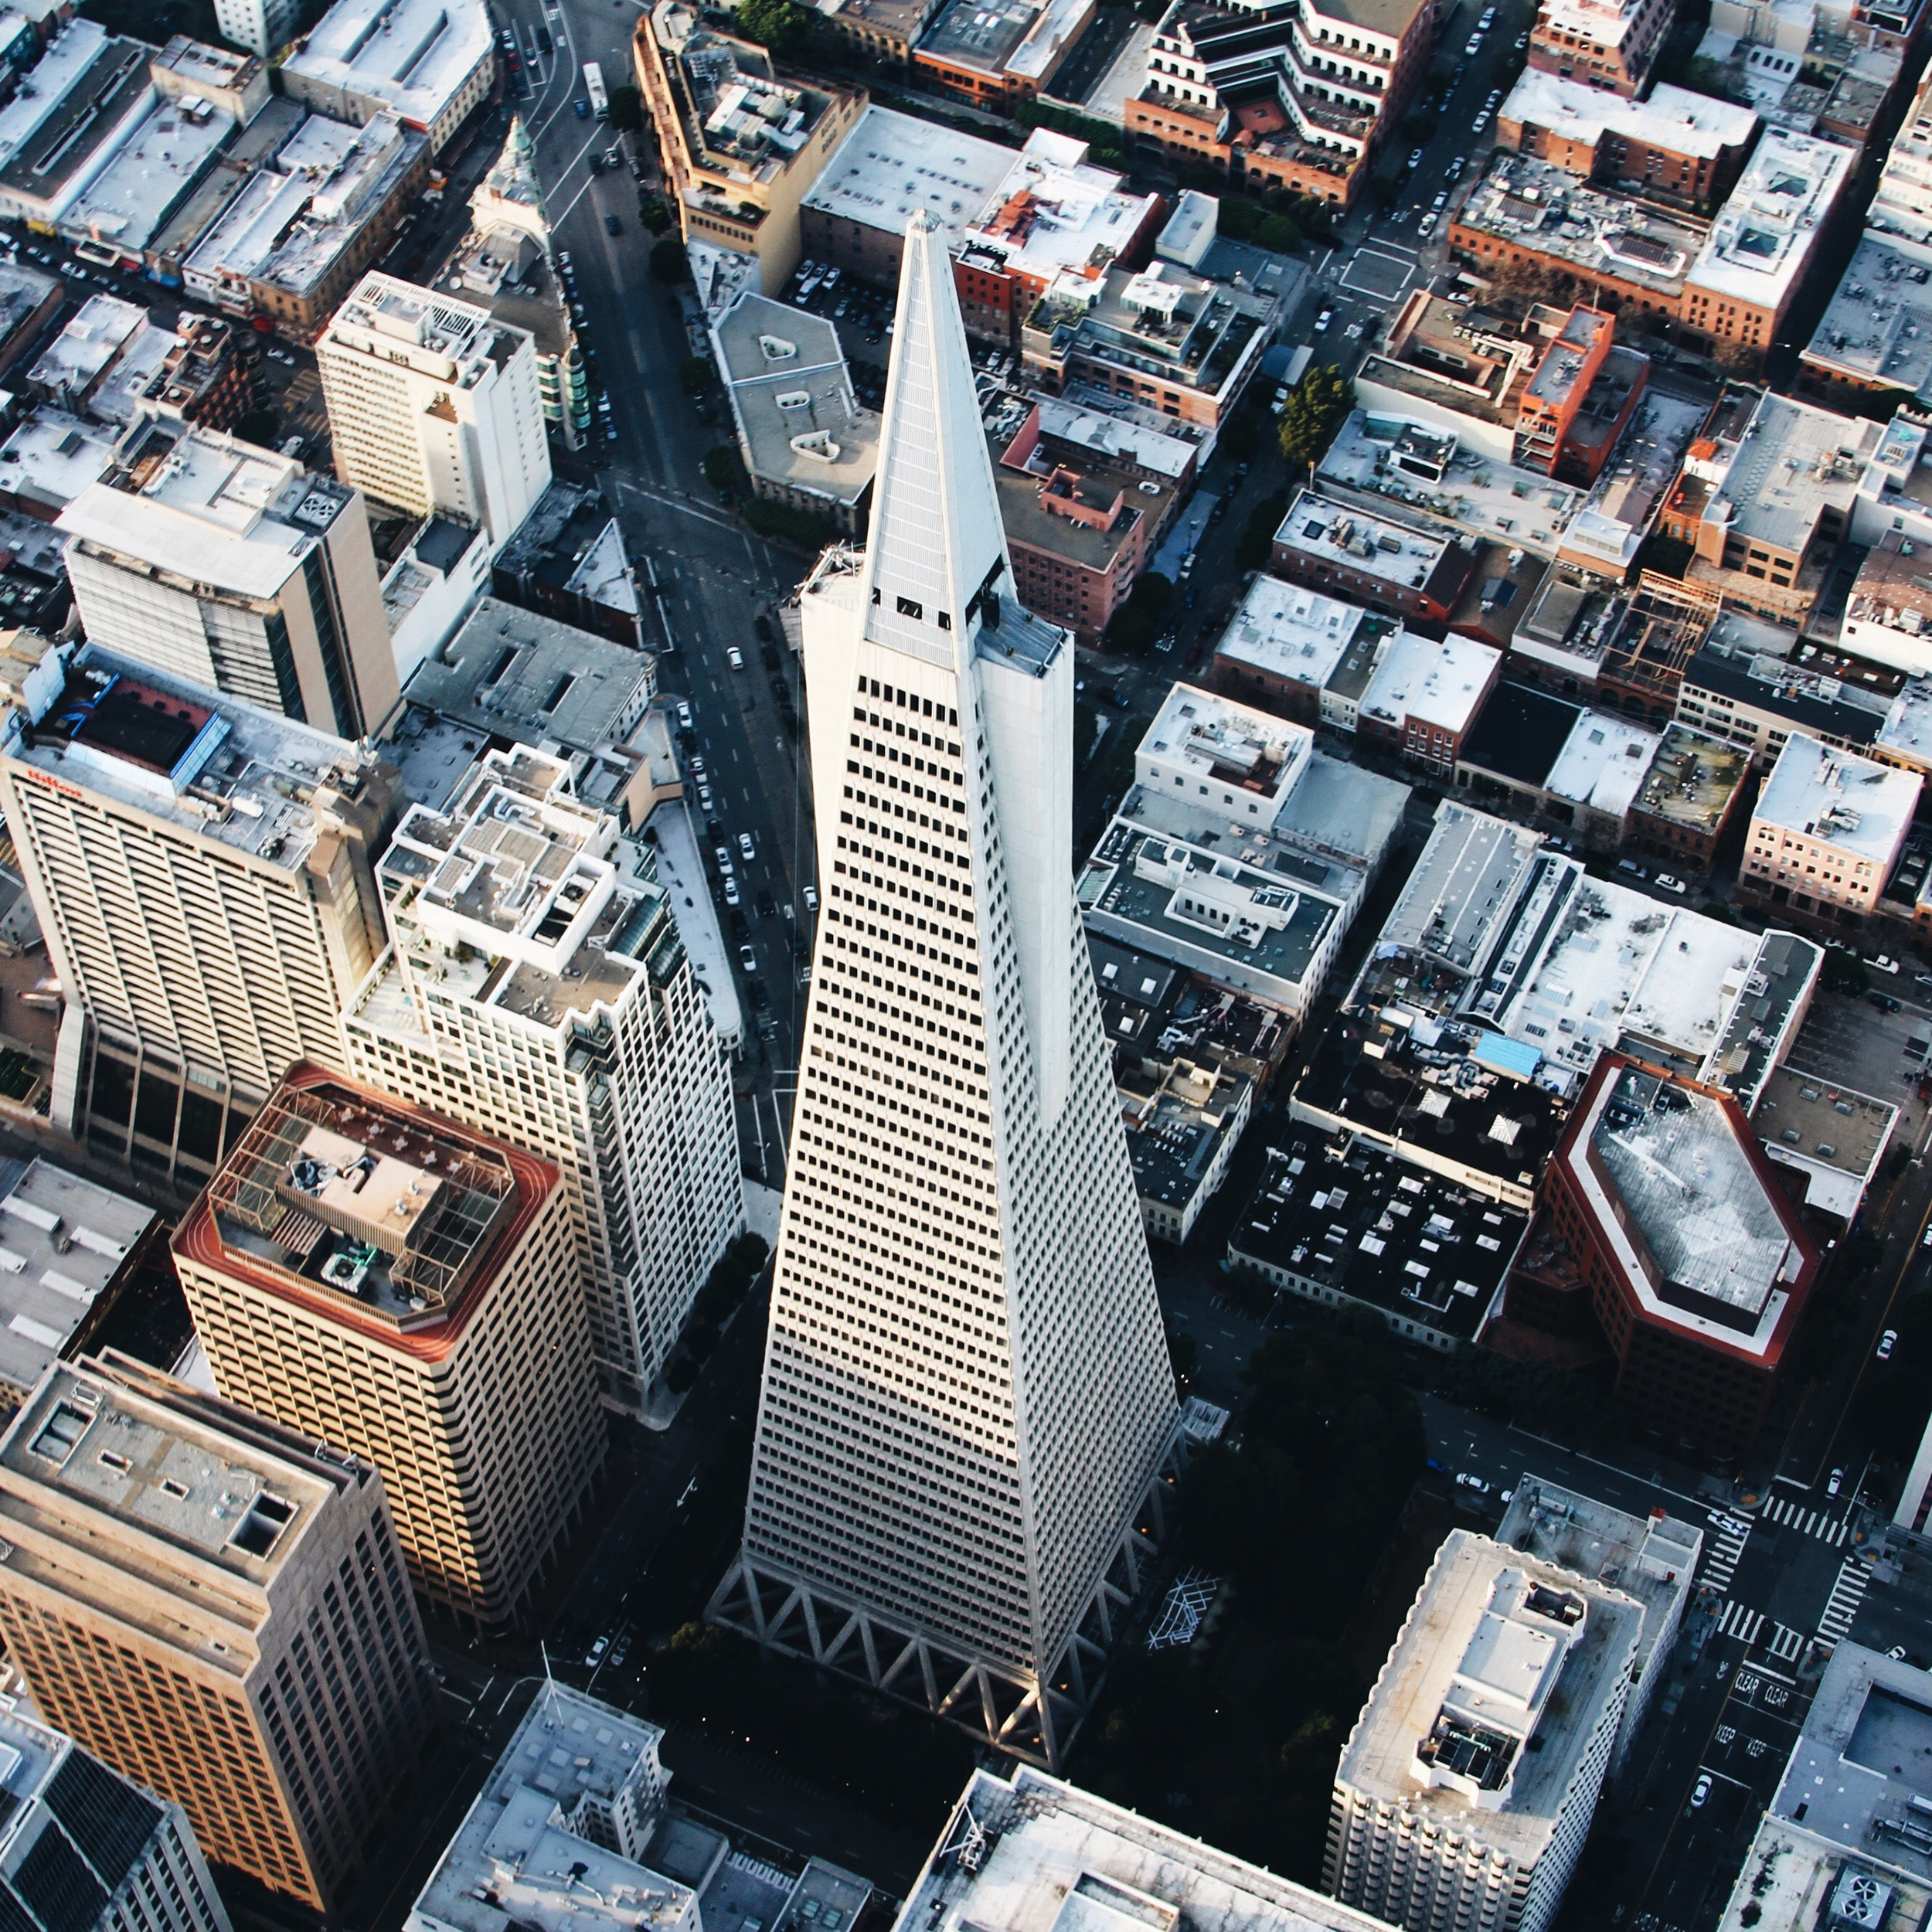 """The Transamerica Pyramid is the second-tallest skyscraper in the skyline of San Francisco, California, at 853 feet (260 m). Its design consists of a tall, four-sided pyramid with two """"wings"""" that accommodate an elevator shaft on the east and a stairwell and smoke tower on the west. Four cameras, pointed in the four cardinal directions, are positioned at the top of the building's spire to form the """"Transamerica Virtual Observation Deck.""""  37.795200°, -122.402800°  Source imagery: Chris Leipelt Photography"""